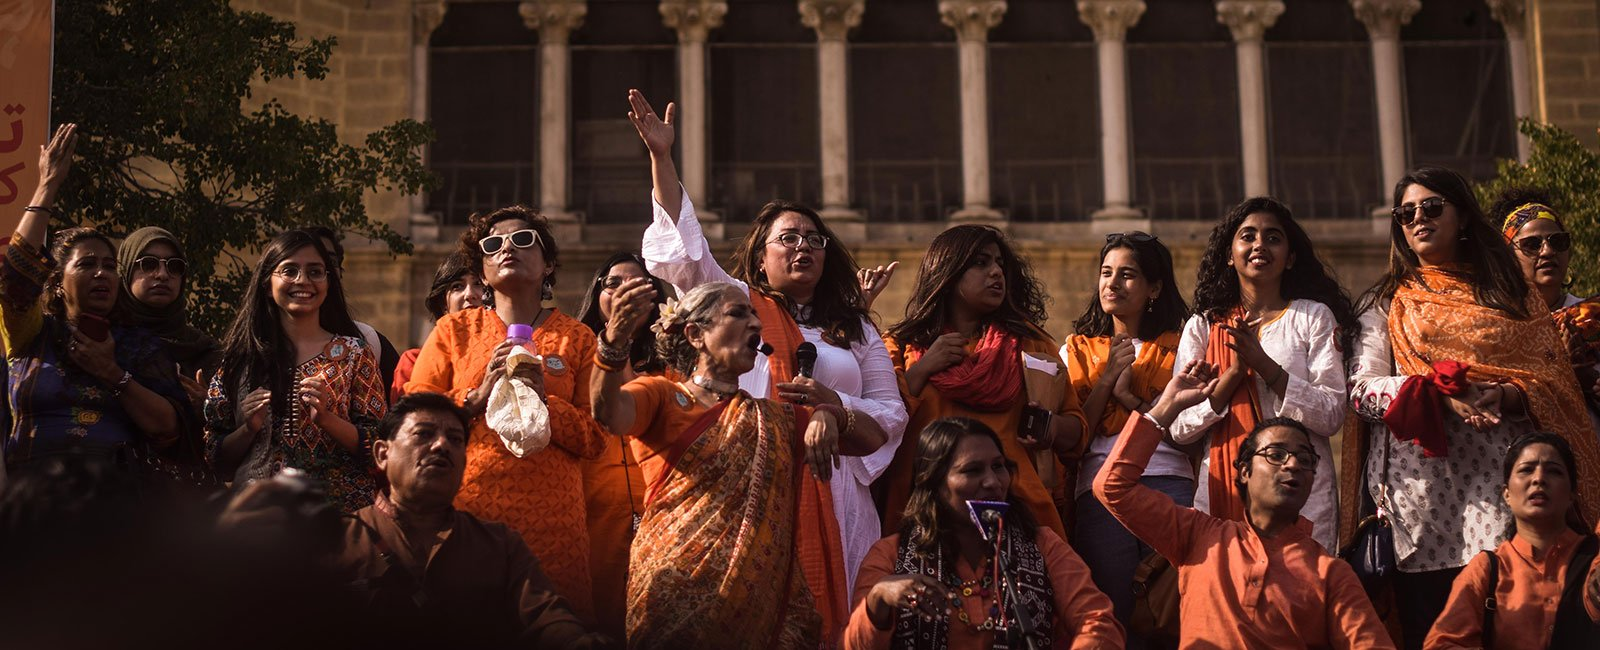 Breaking the shackles of patriarchy at Aurat March 2019: In pictures